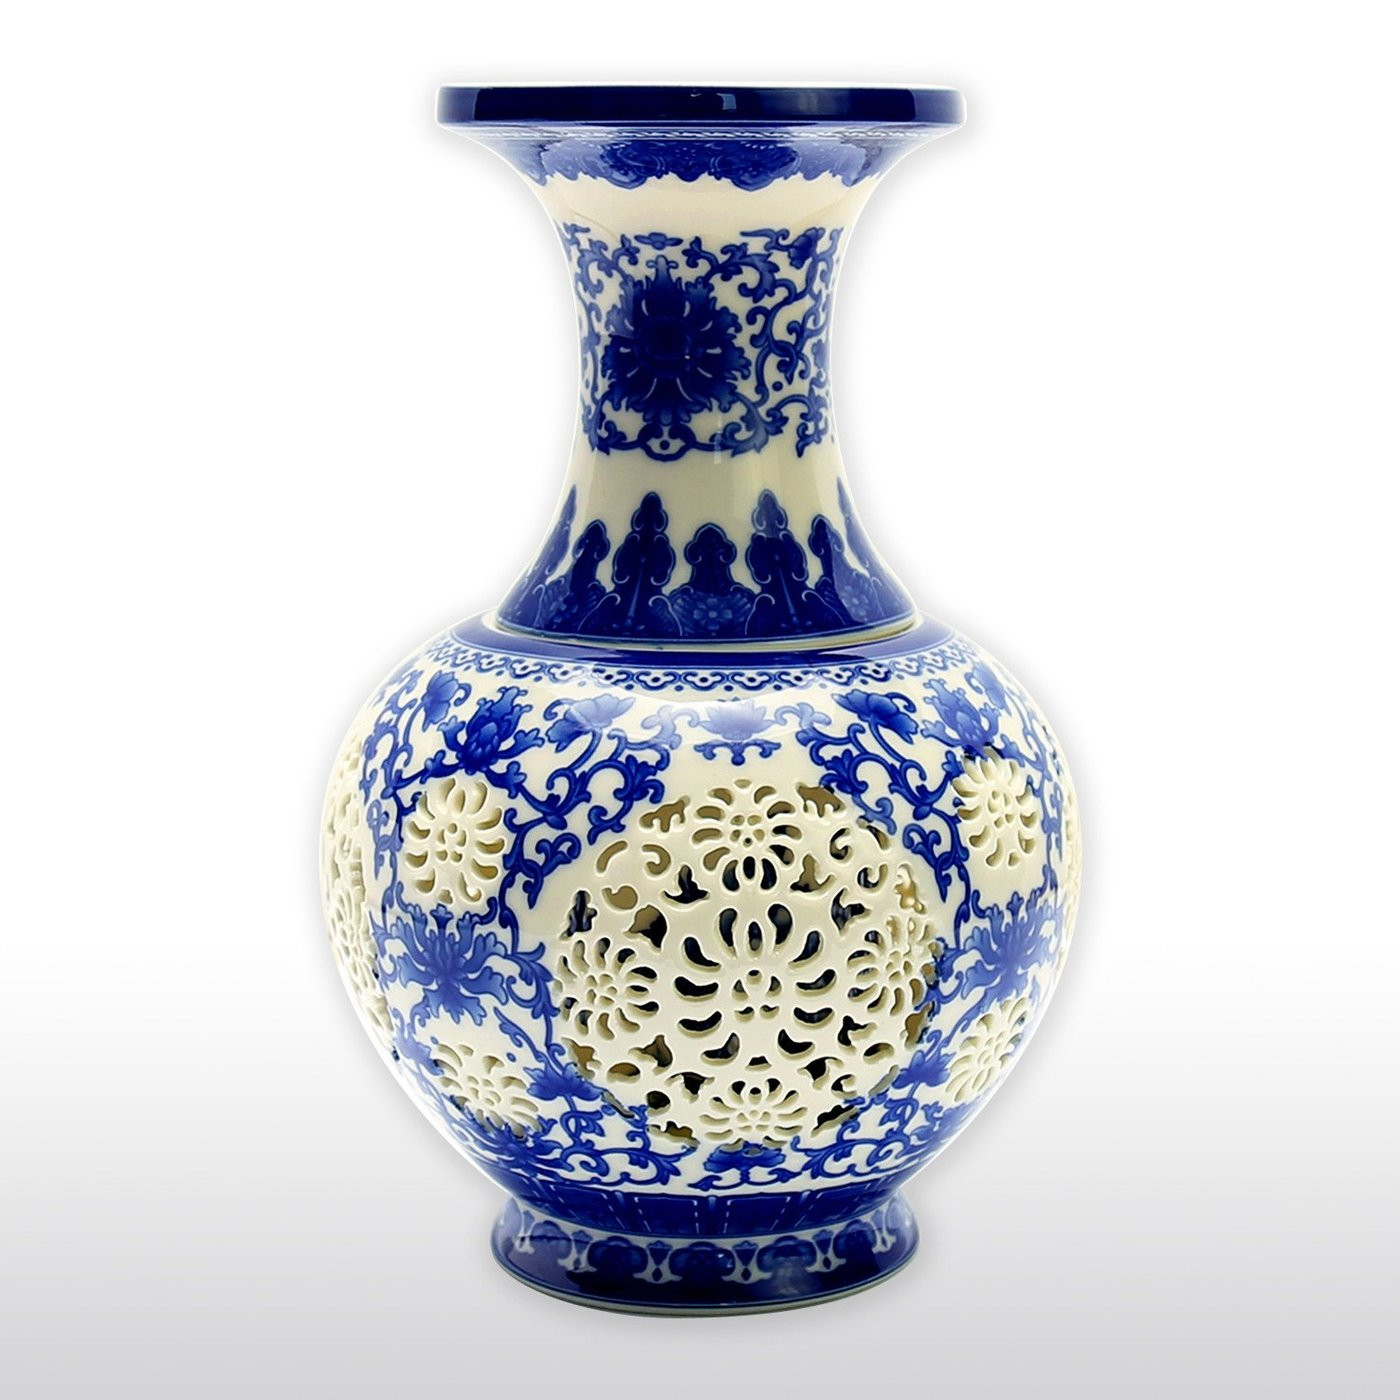 chinese blue porcelain vases of blue and white porcelain chinese classic vase with birds and flowers intended for vases jars chinese blue and white porcelain vase with decorative hollow carvings by x chinese blue